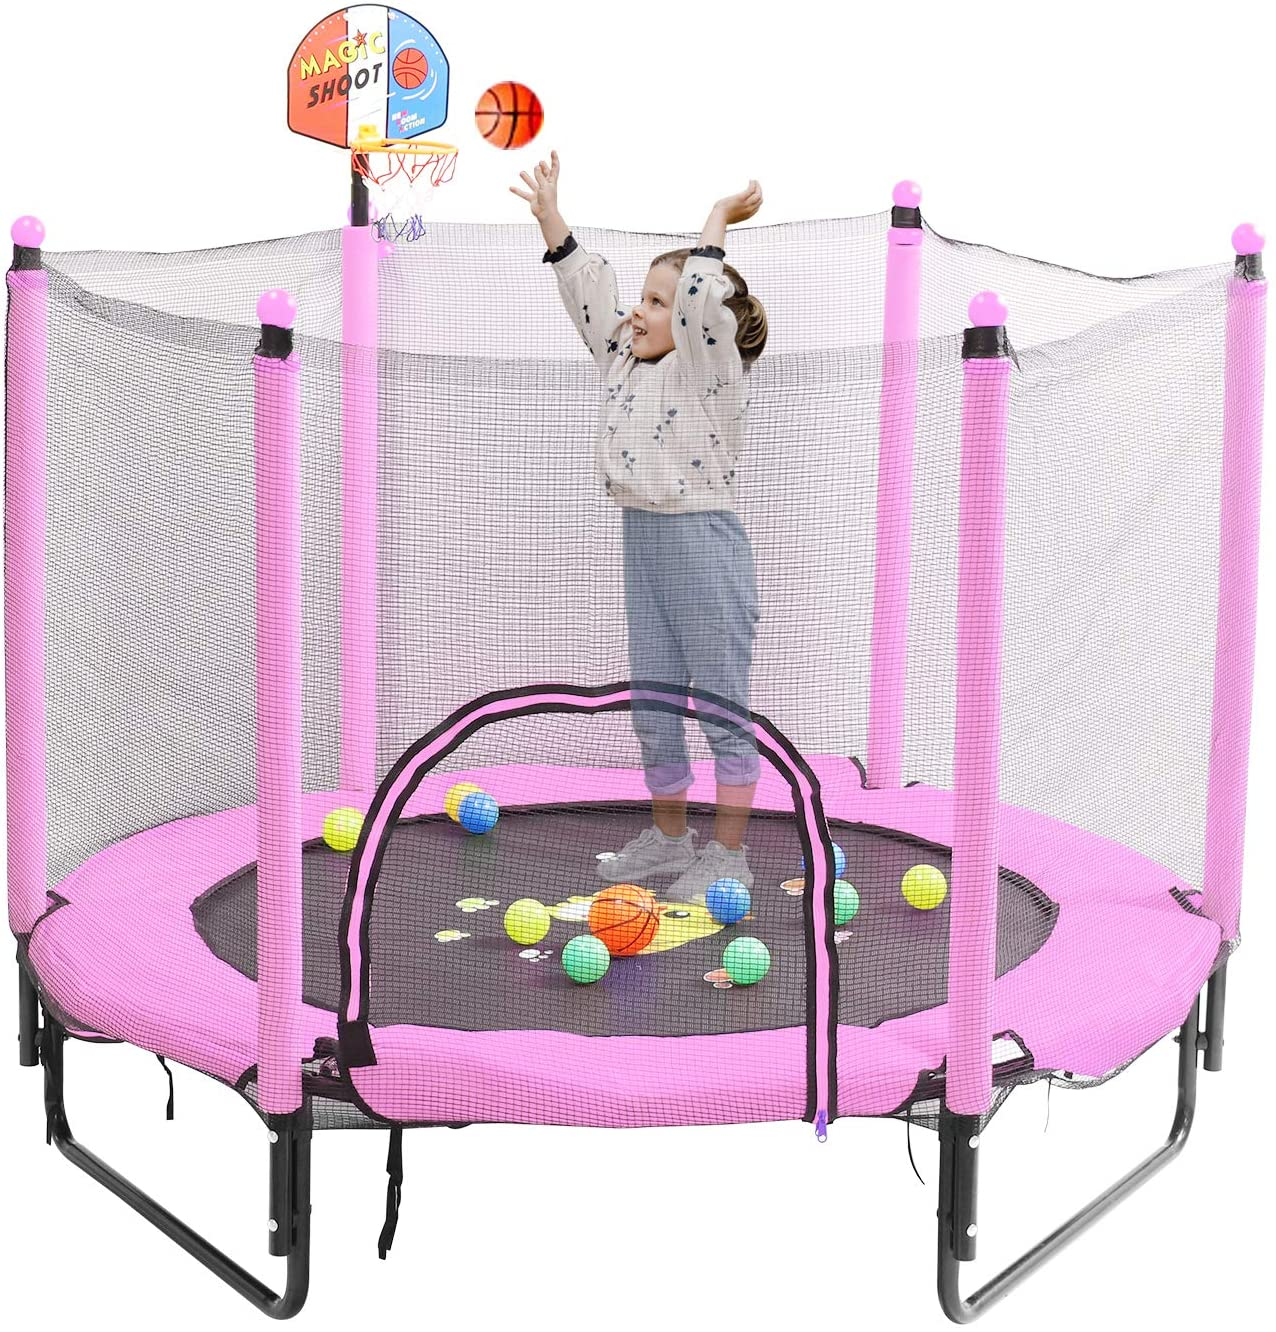 Trampoline for Kids 5 FT Bulit Outdoor 2021new shipping free shipping Toddler Indoor Max 48% OFF